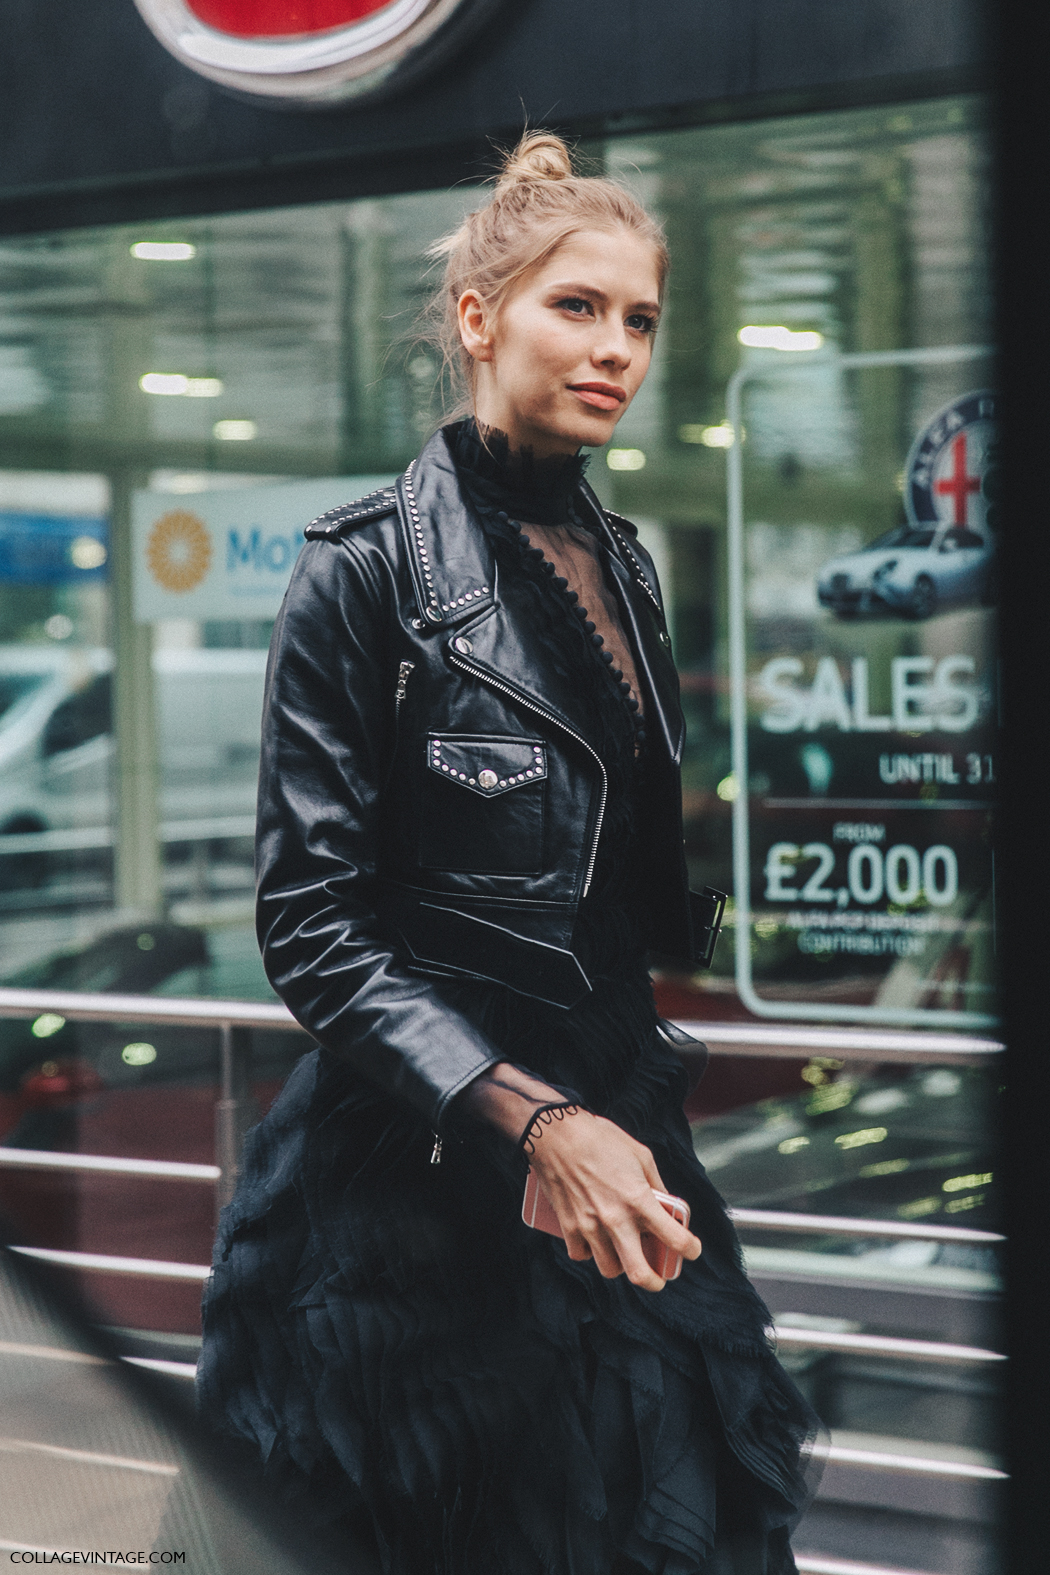 LFW-London_Fashion_Week_Fall_16-Street_Style-Collage_Vintage-Elena_Perminova-Total_Black-Leather_Biker_Jacket-1